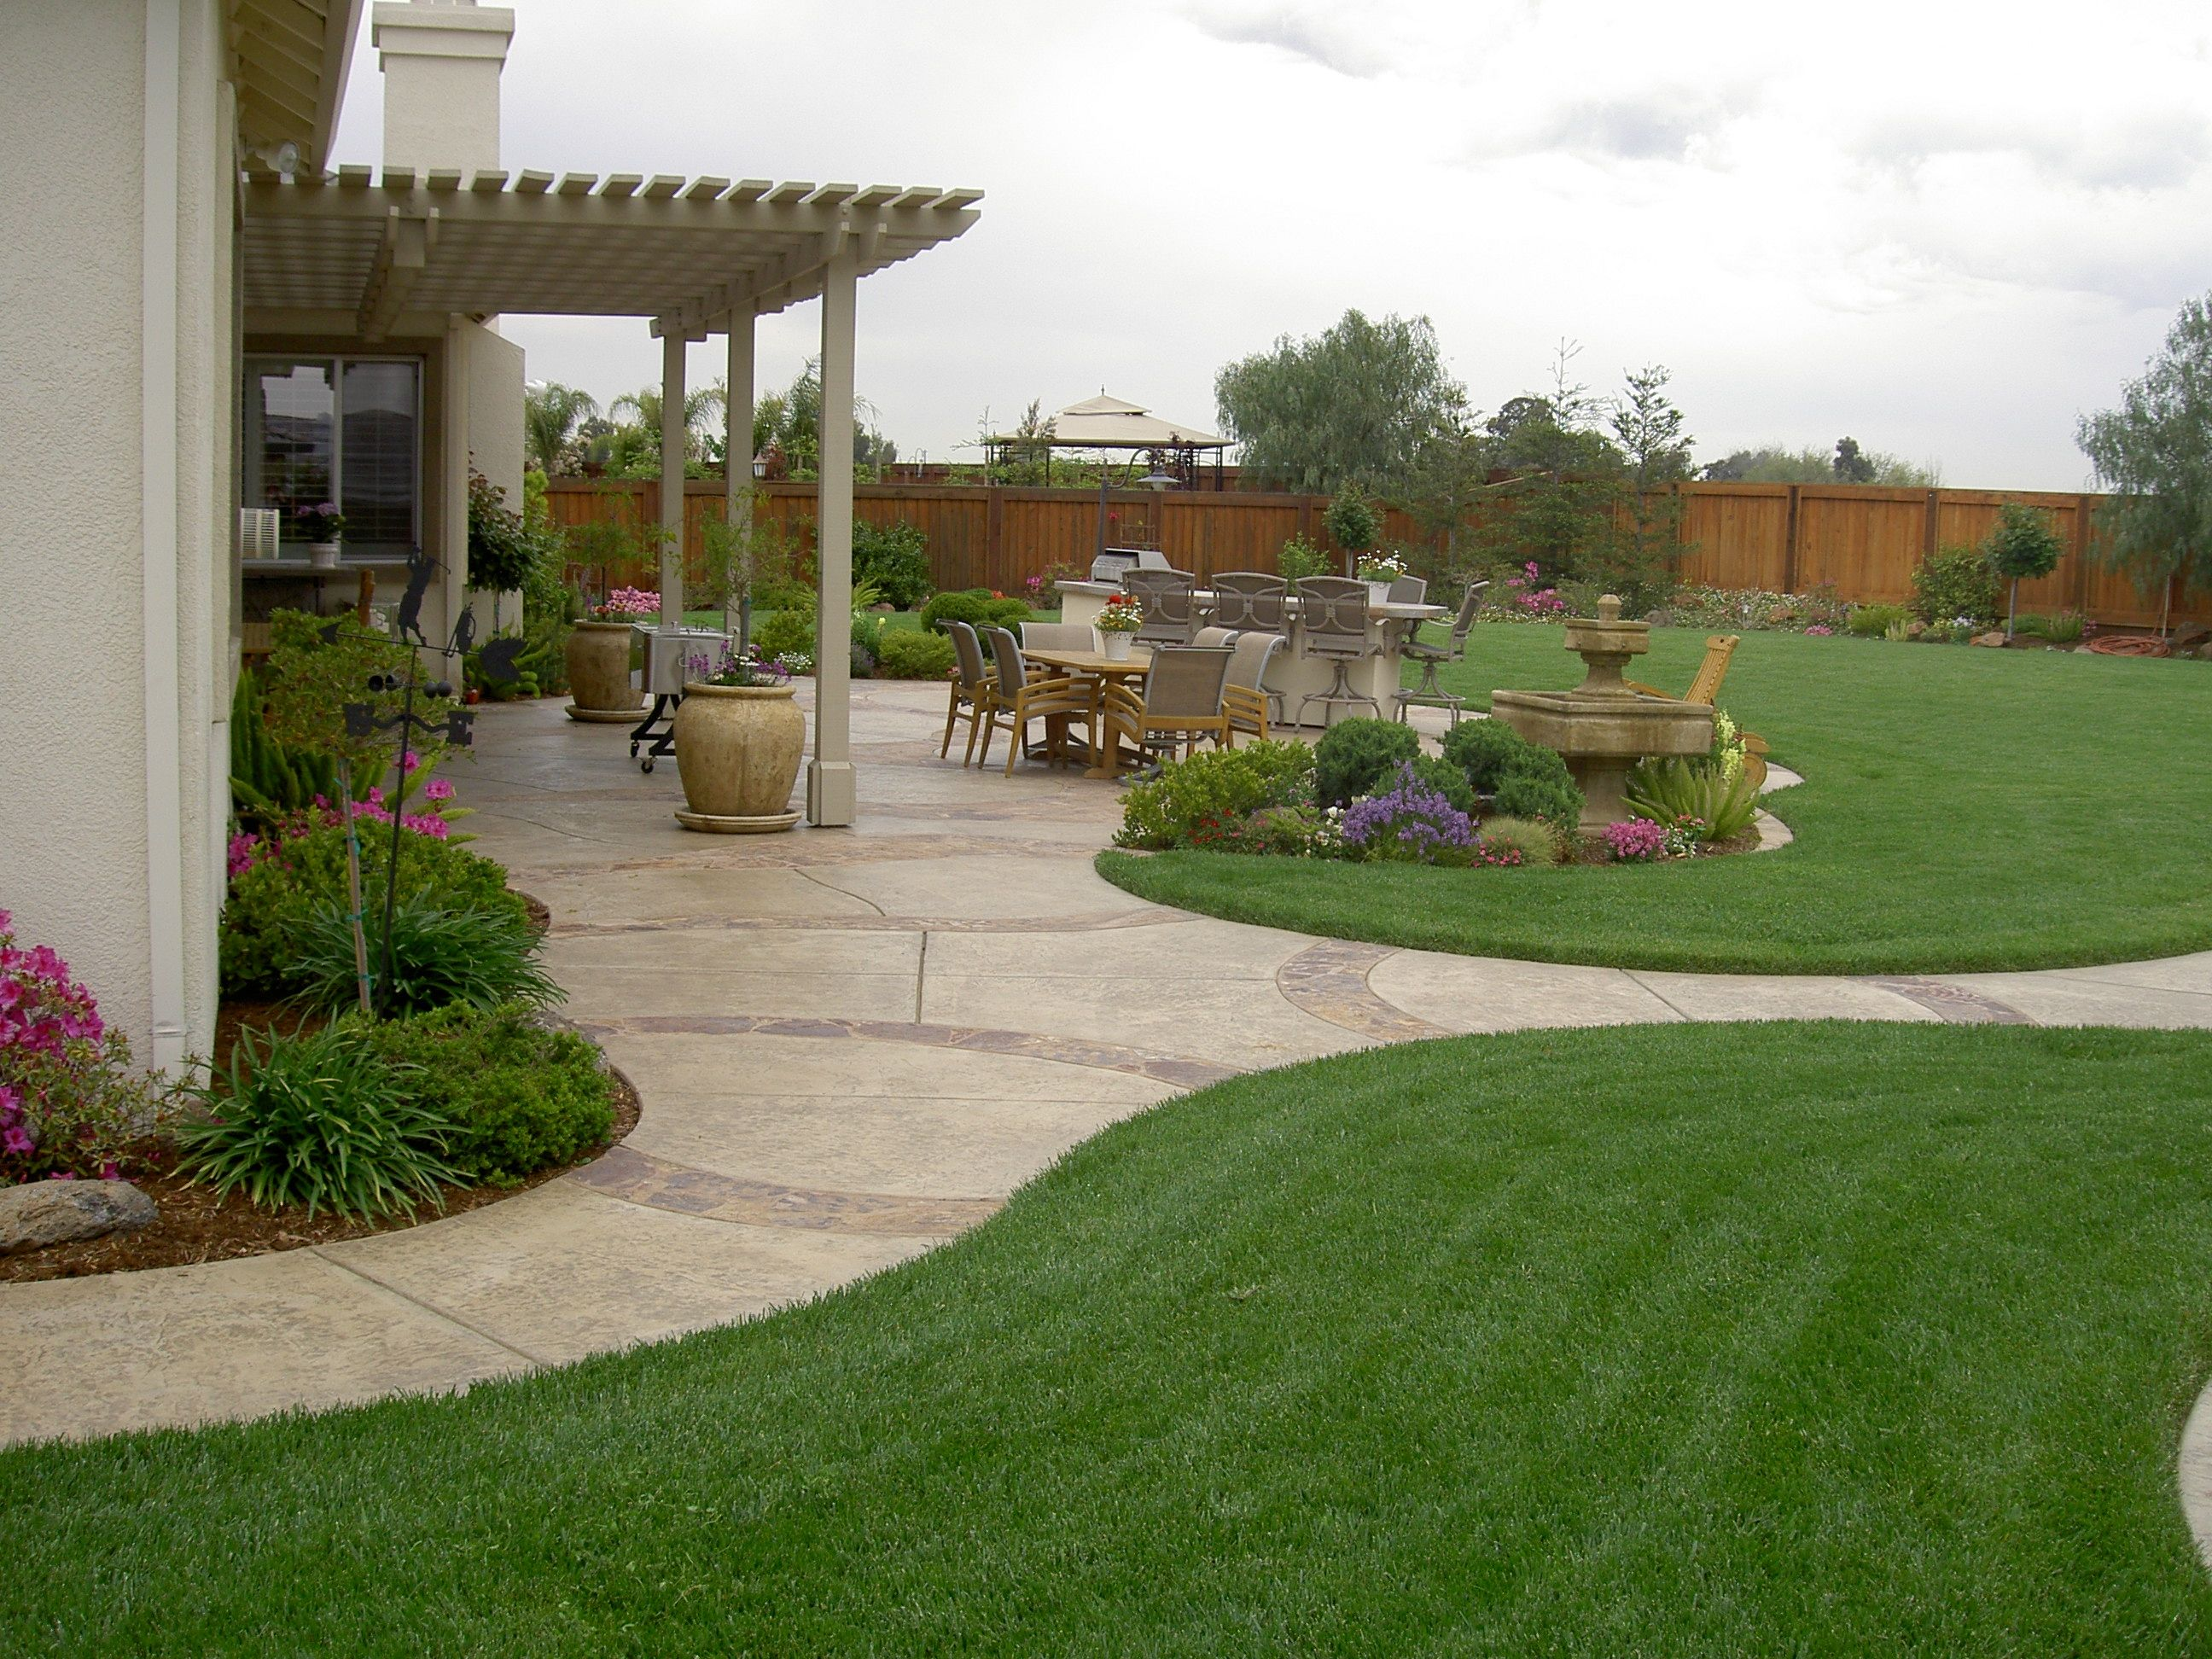 Genial Designs Landscaping Photos Backyard Designs Landscaping Photos By .